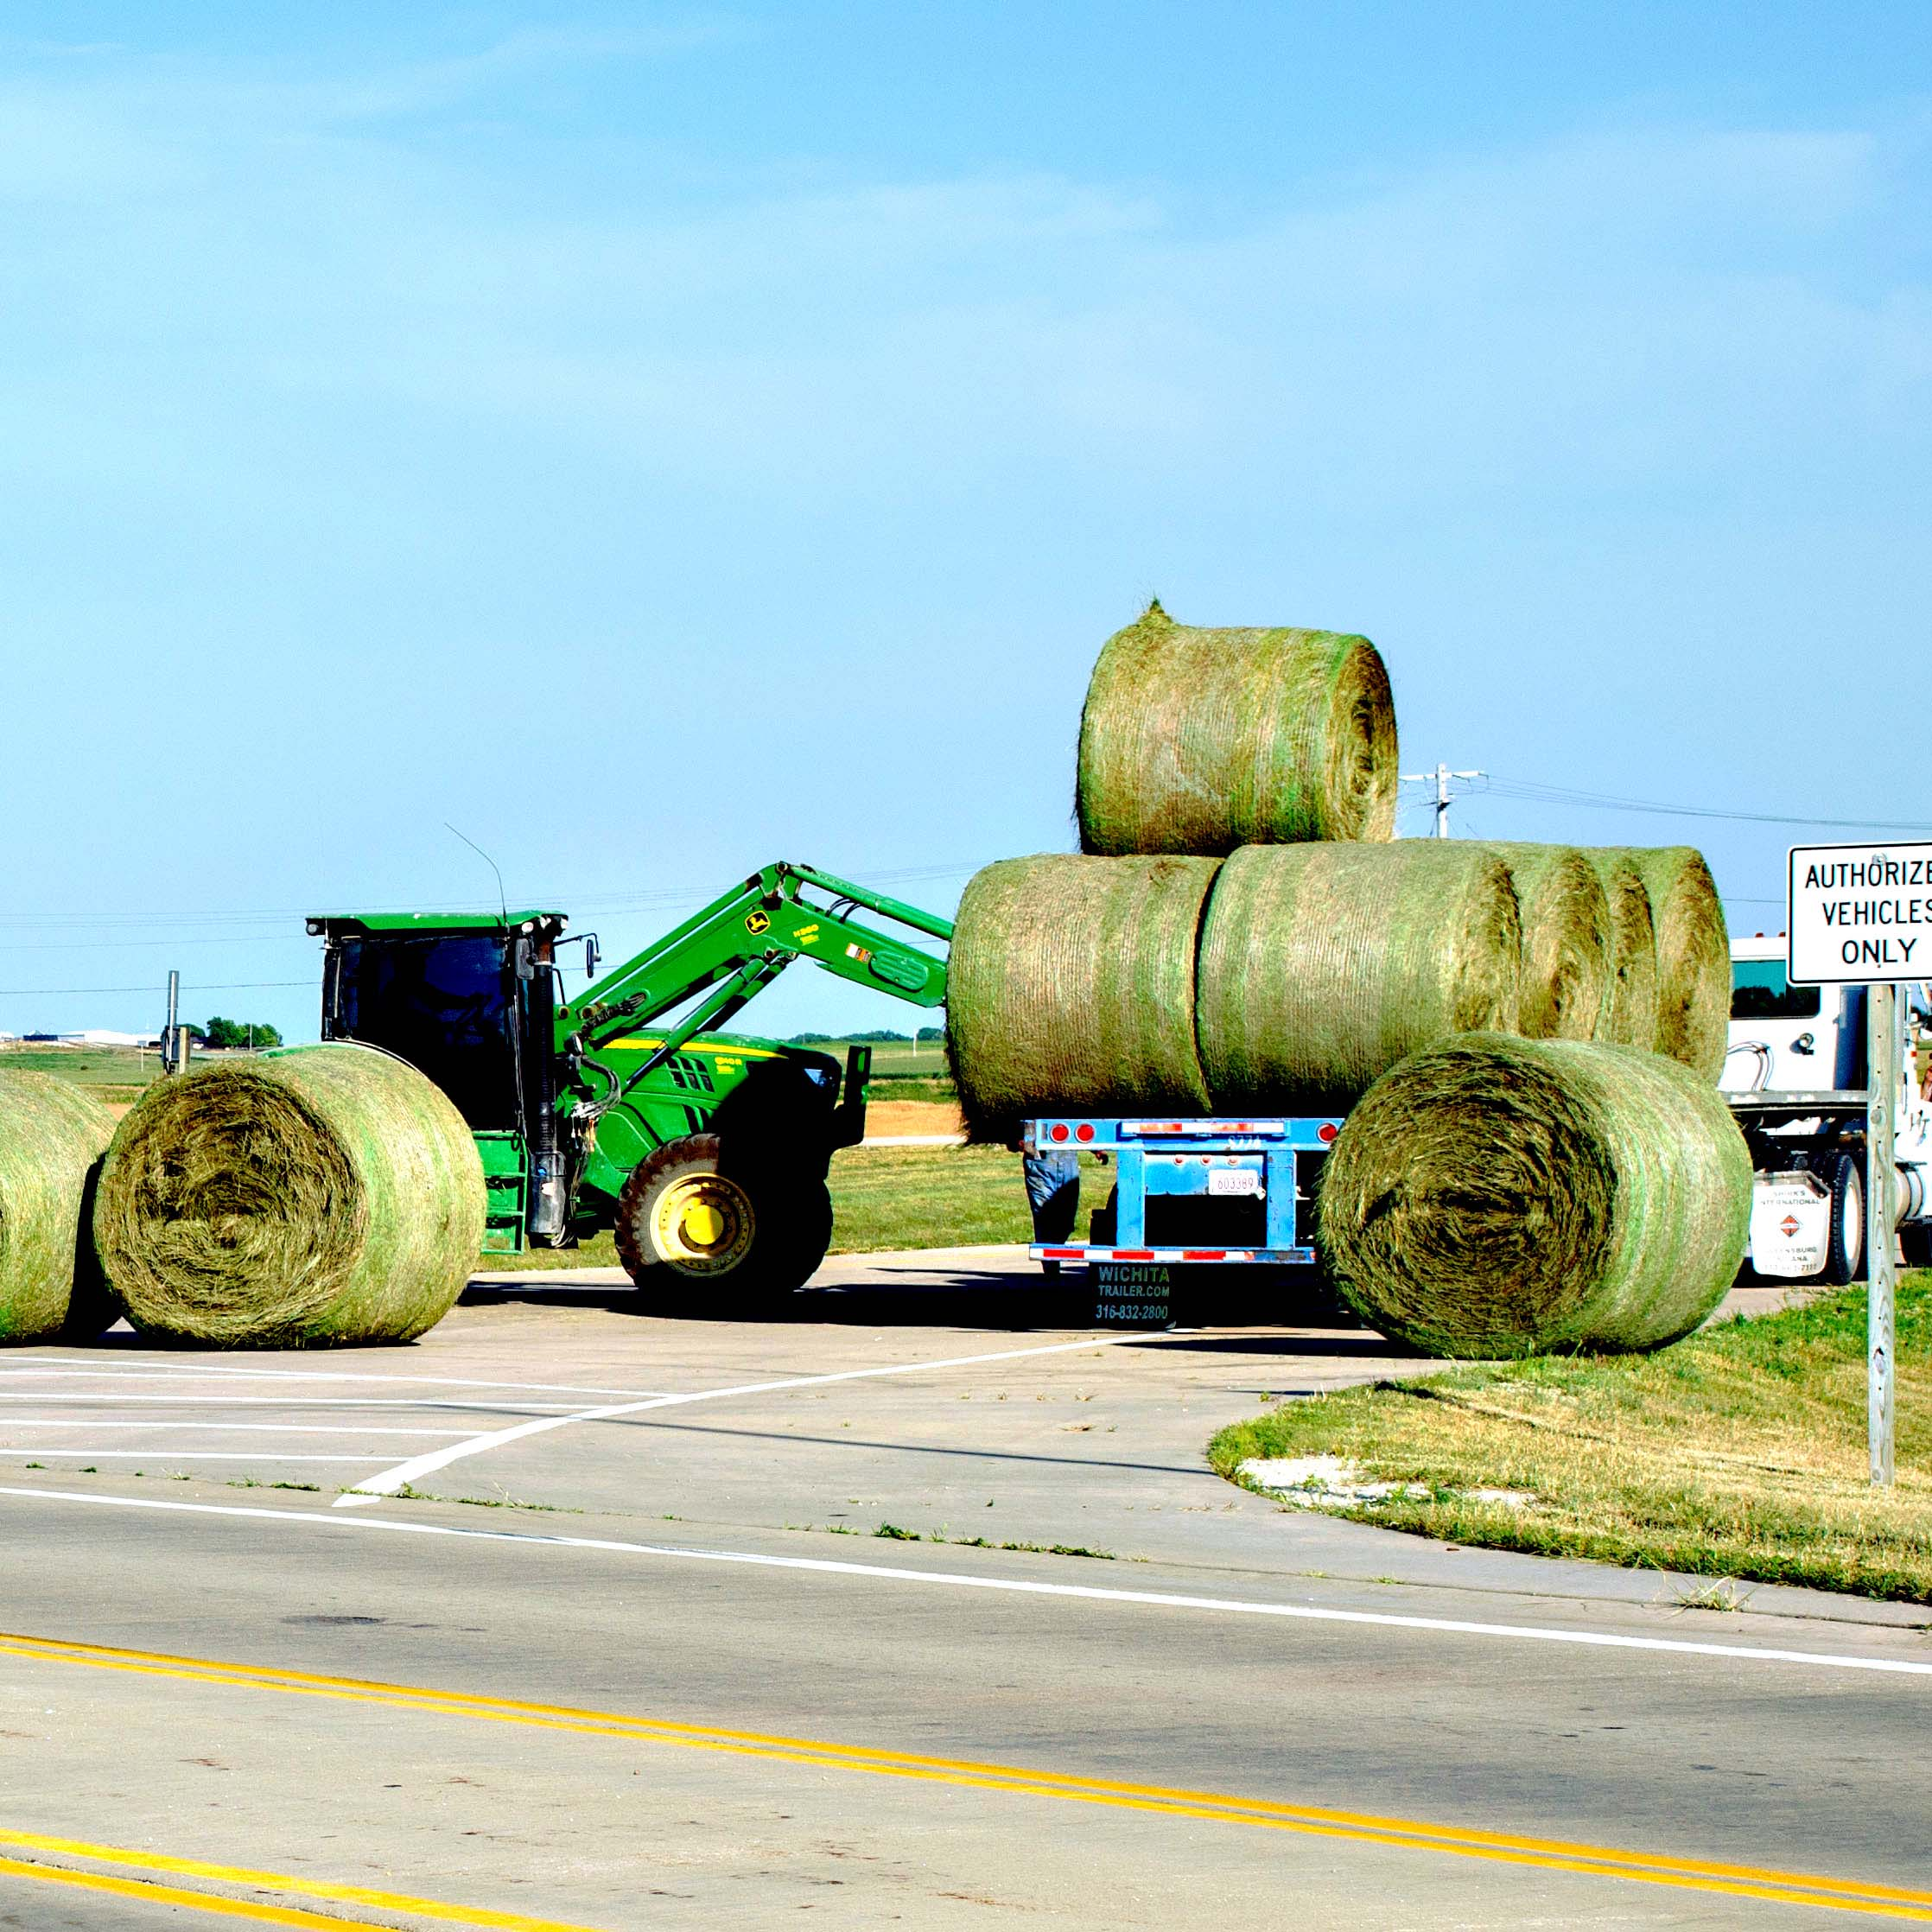 The Hillsboro Trojans' Jesse Meier sprints downfield after catching a pass from quarterback Justus Hilliard in Friday action against Halstead. Meier was a last-minute replacement at running back, and had one day of practice before the game.